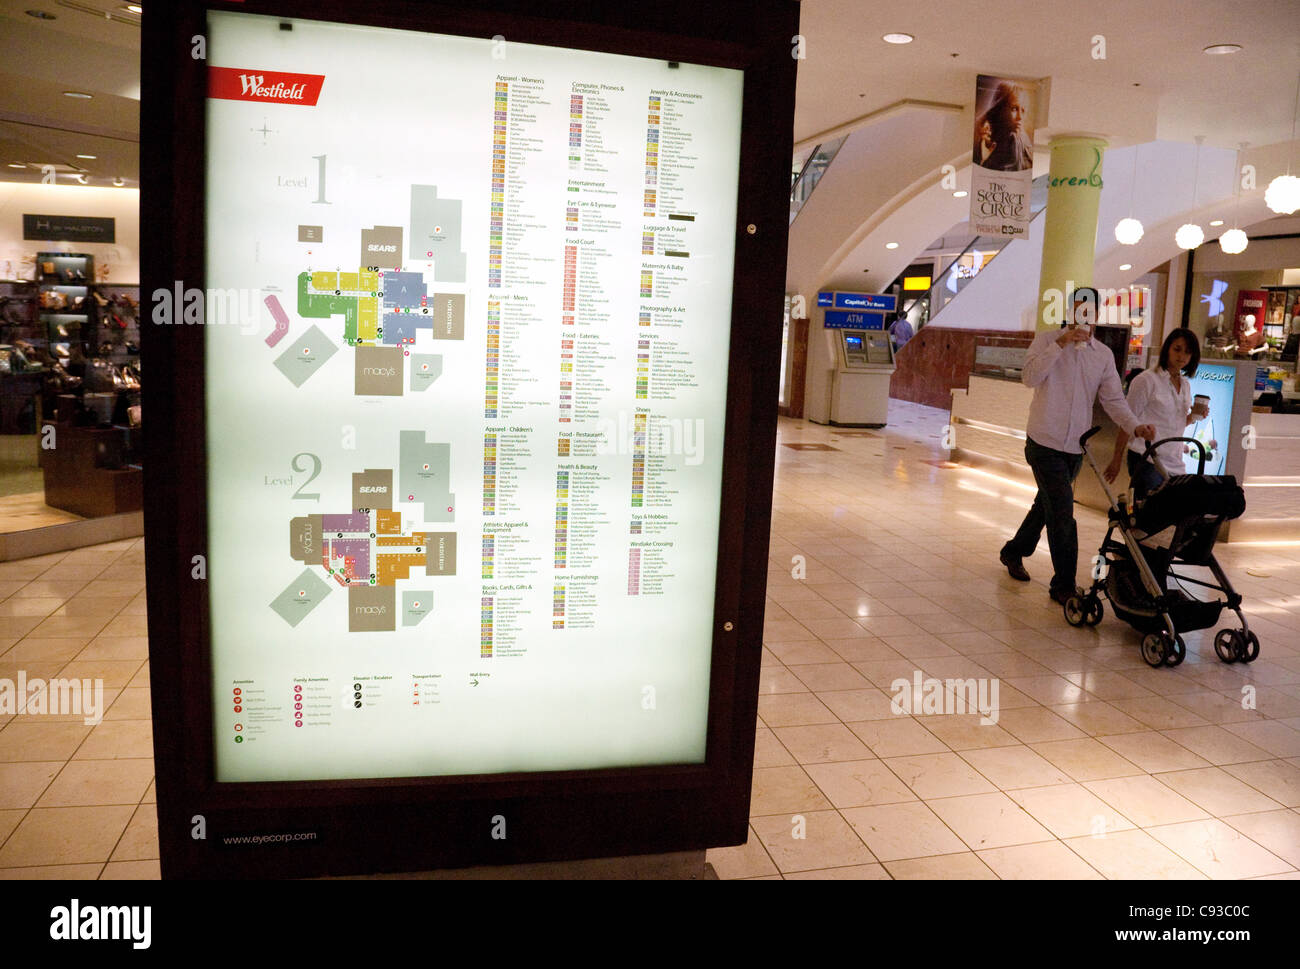 shoppers walking past the  information sign, Westfield Montgomery Shopping Mall, Washington DC USA - Stock Image